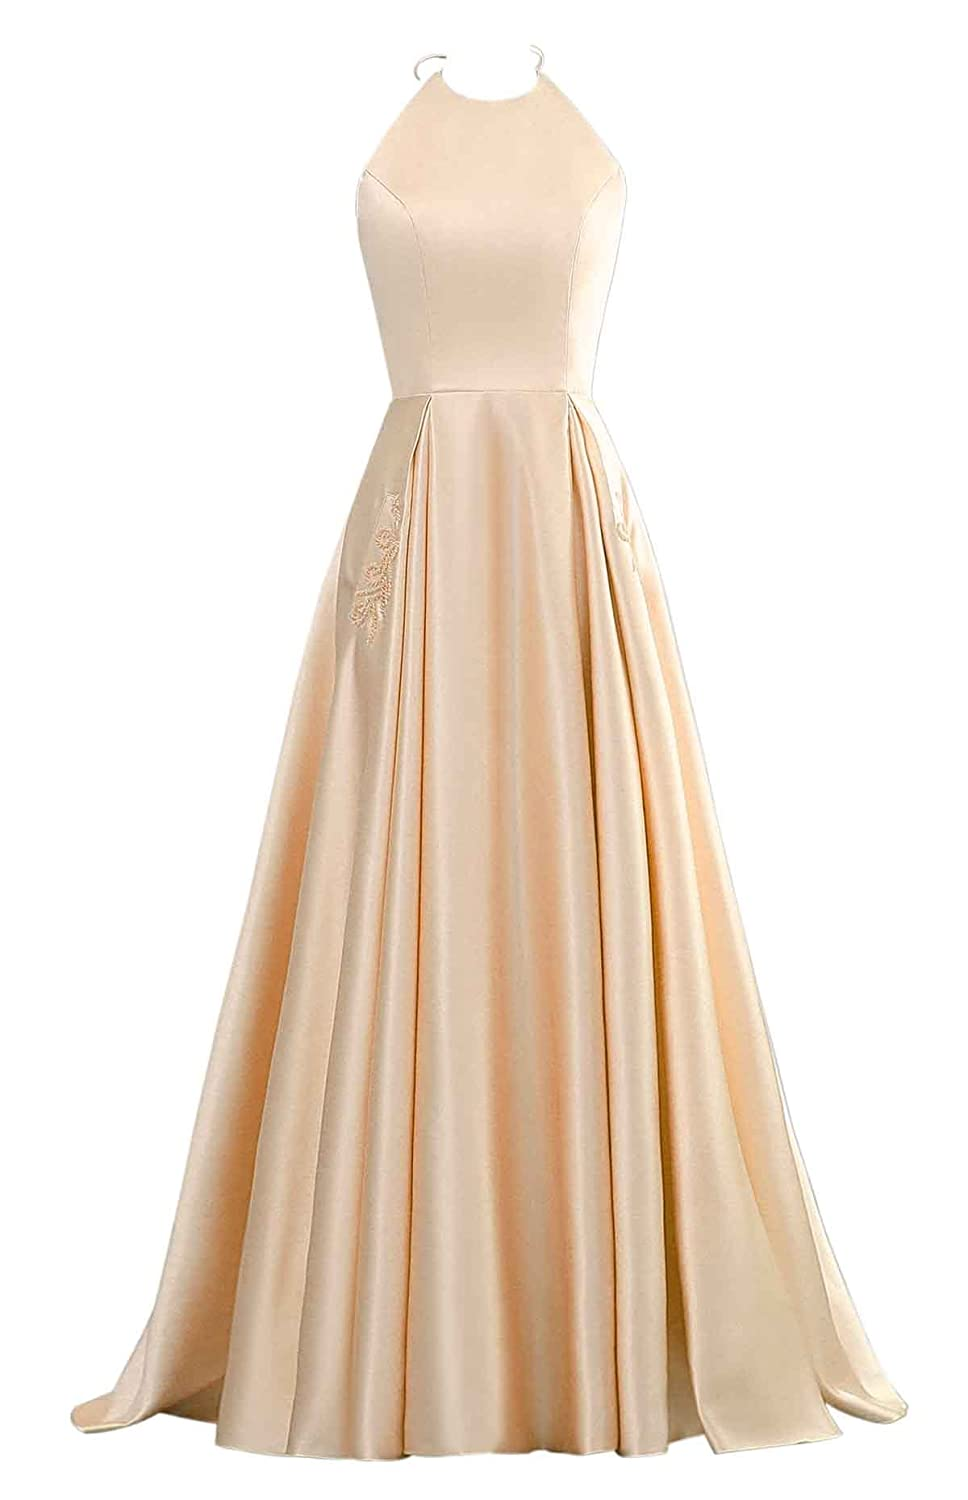 Champagne Changuan Halter Aline Satin Evening Prom Dresses for Women Beaded Long Formal Gown with Pockets